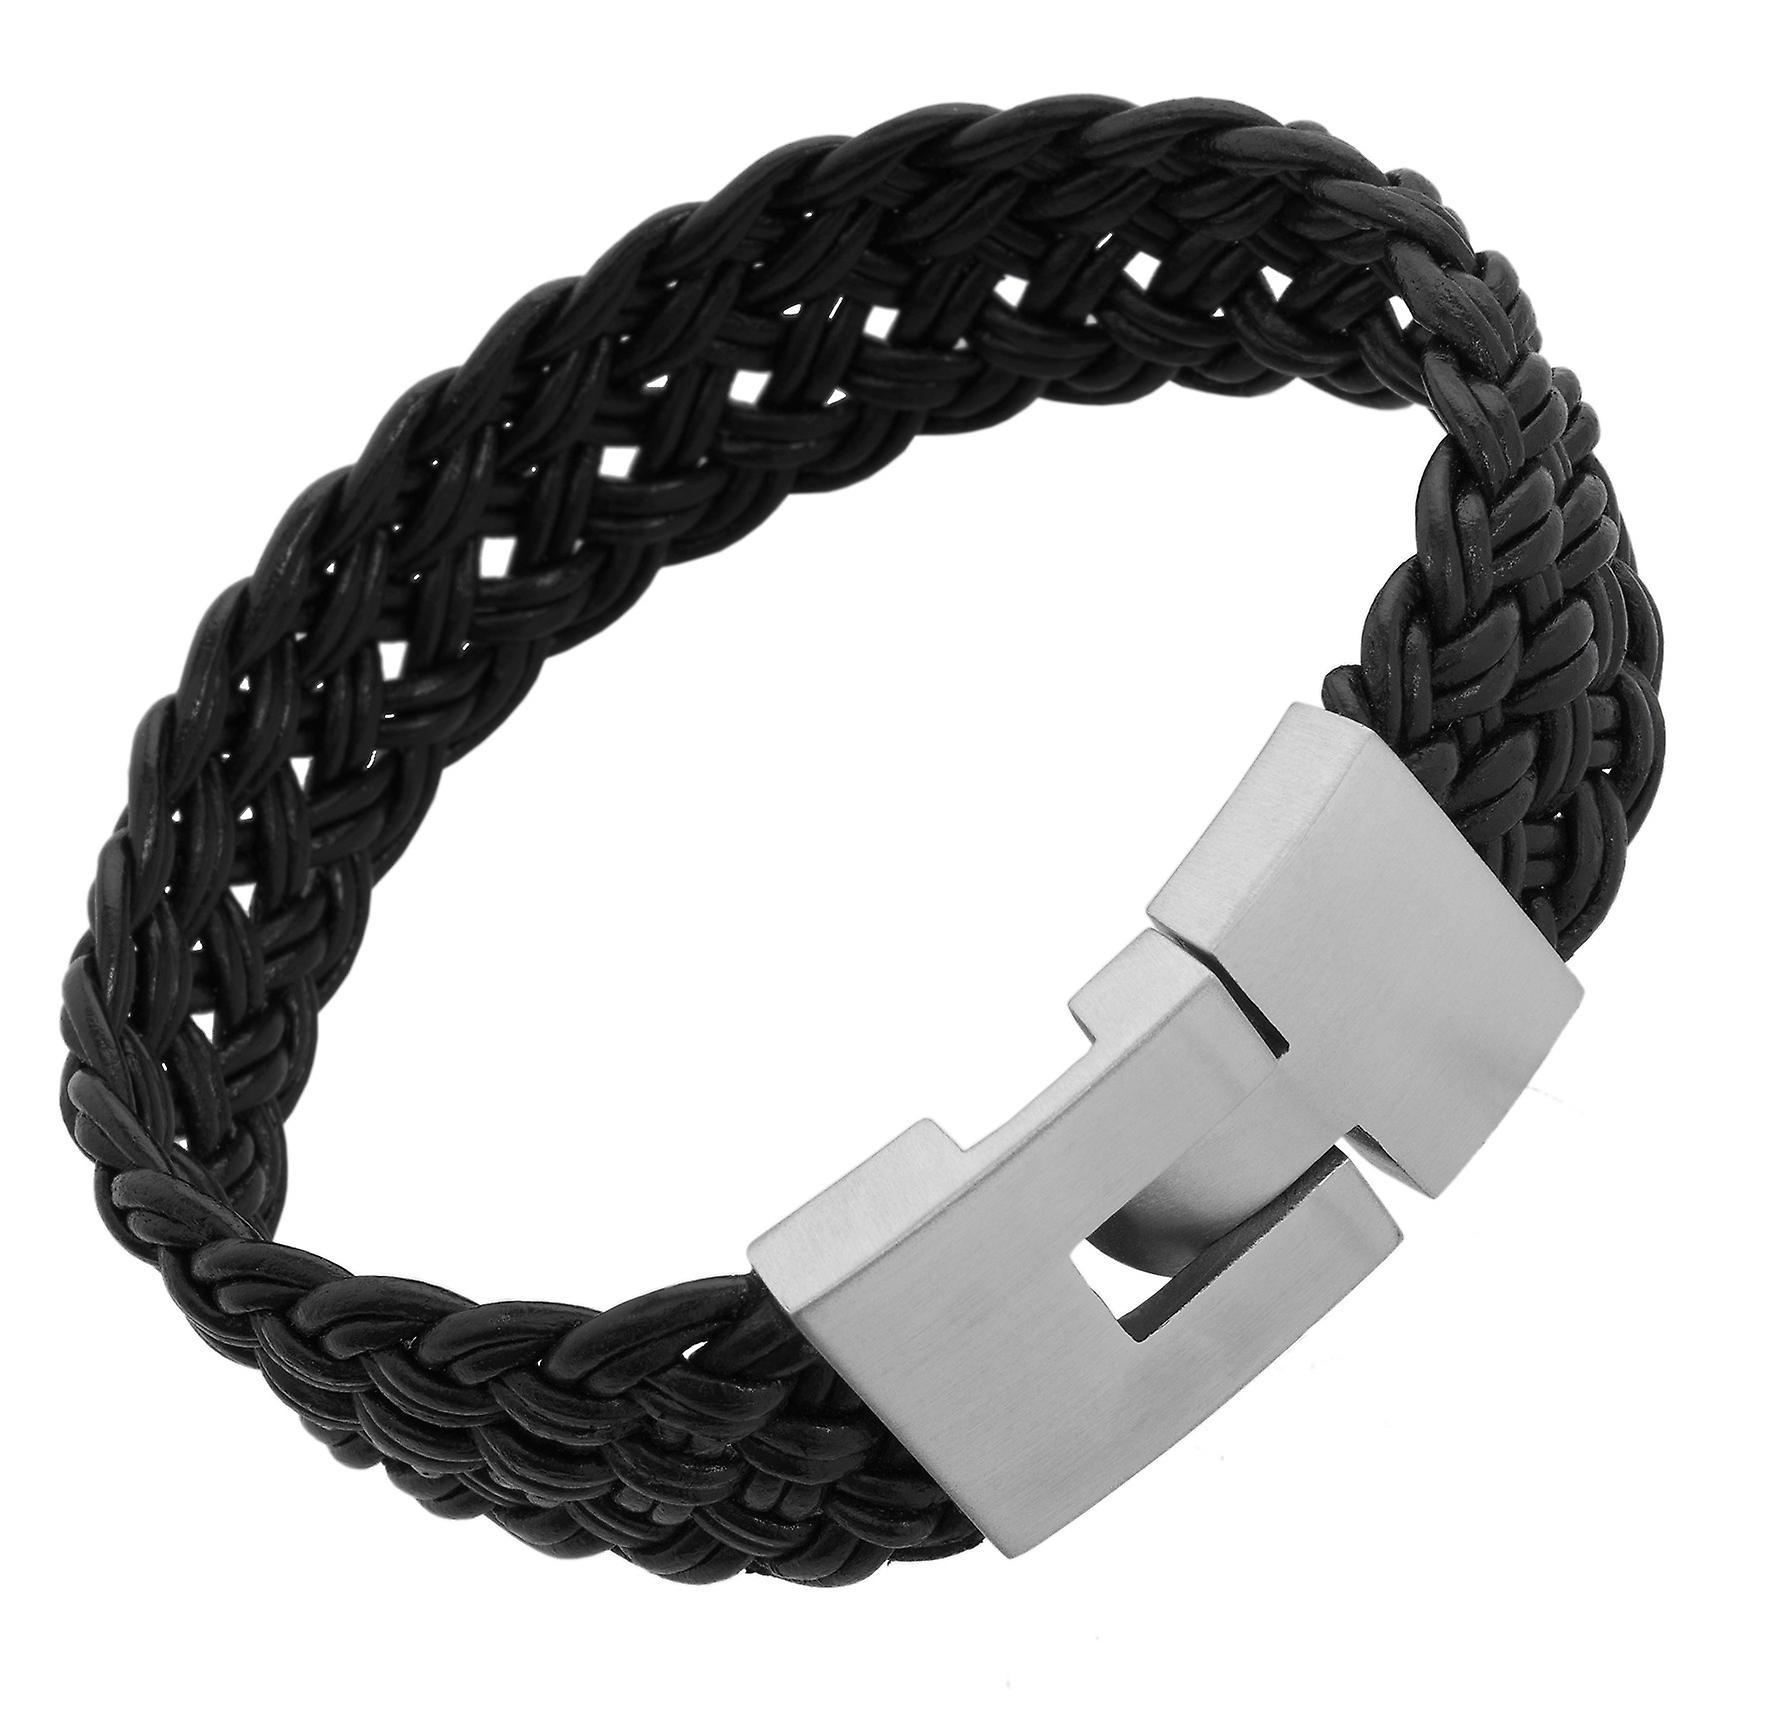 Burgmeister Leather bracelet, JBM4022-759